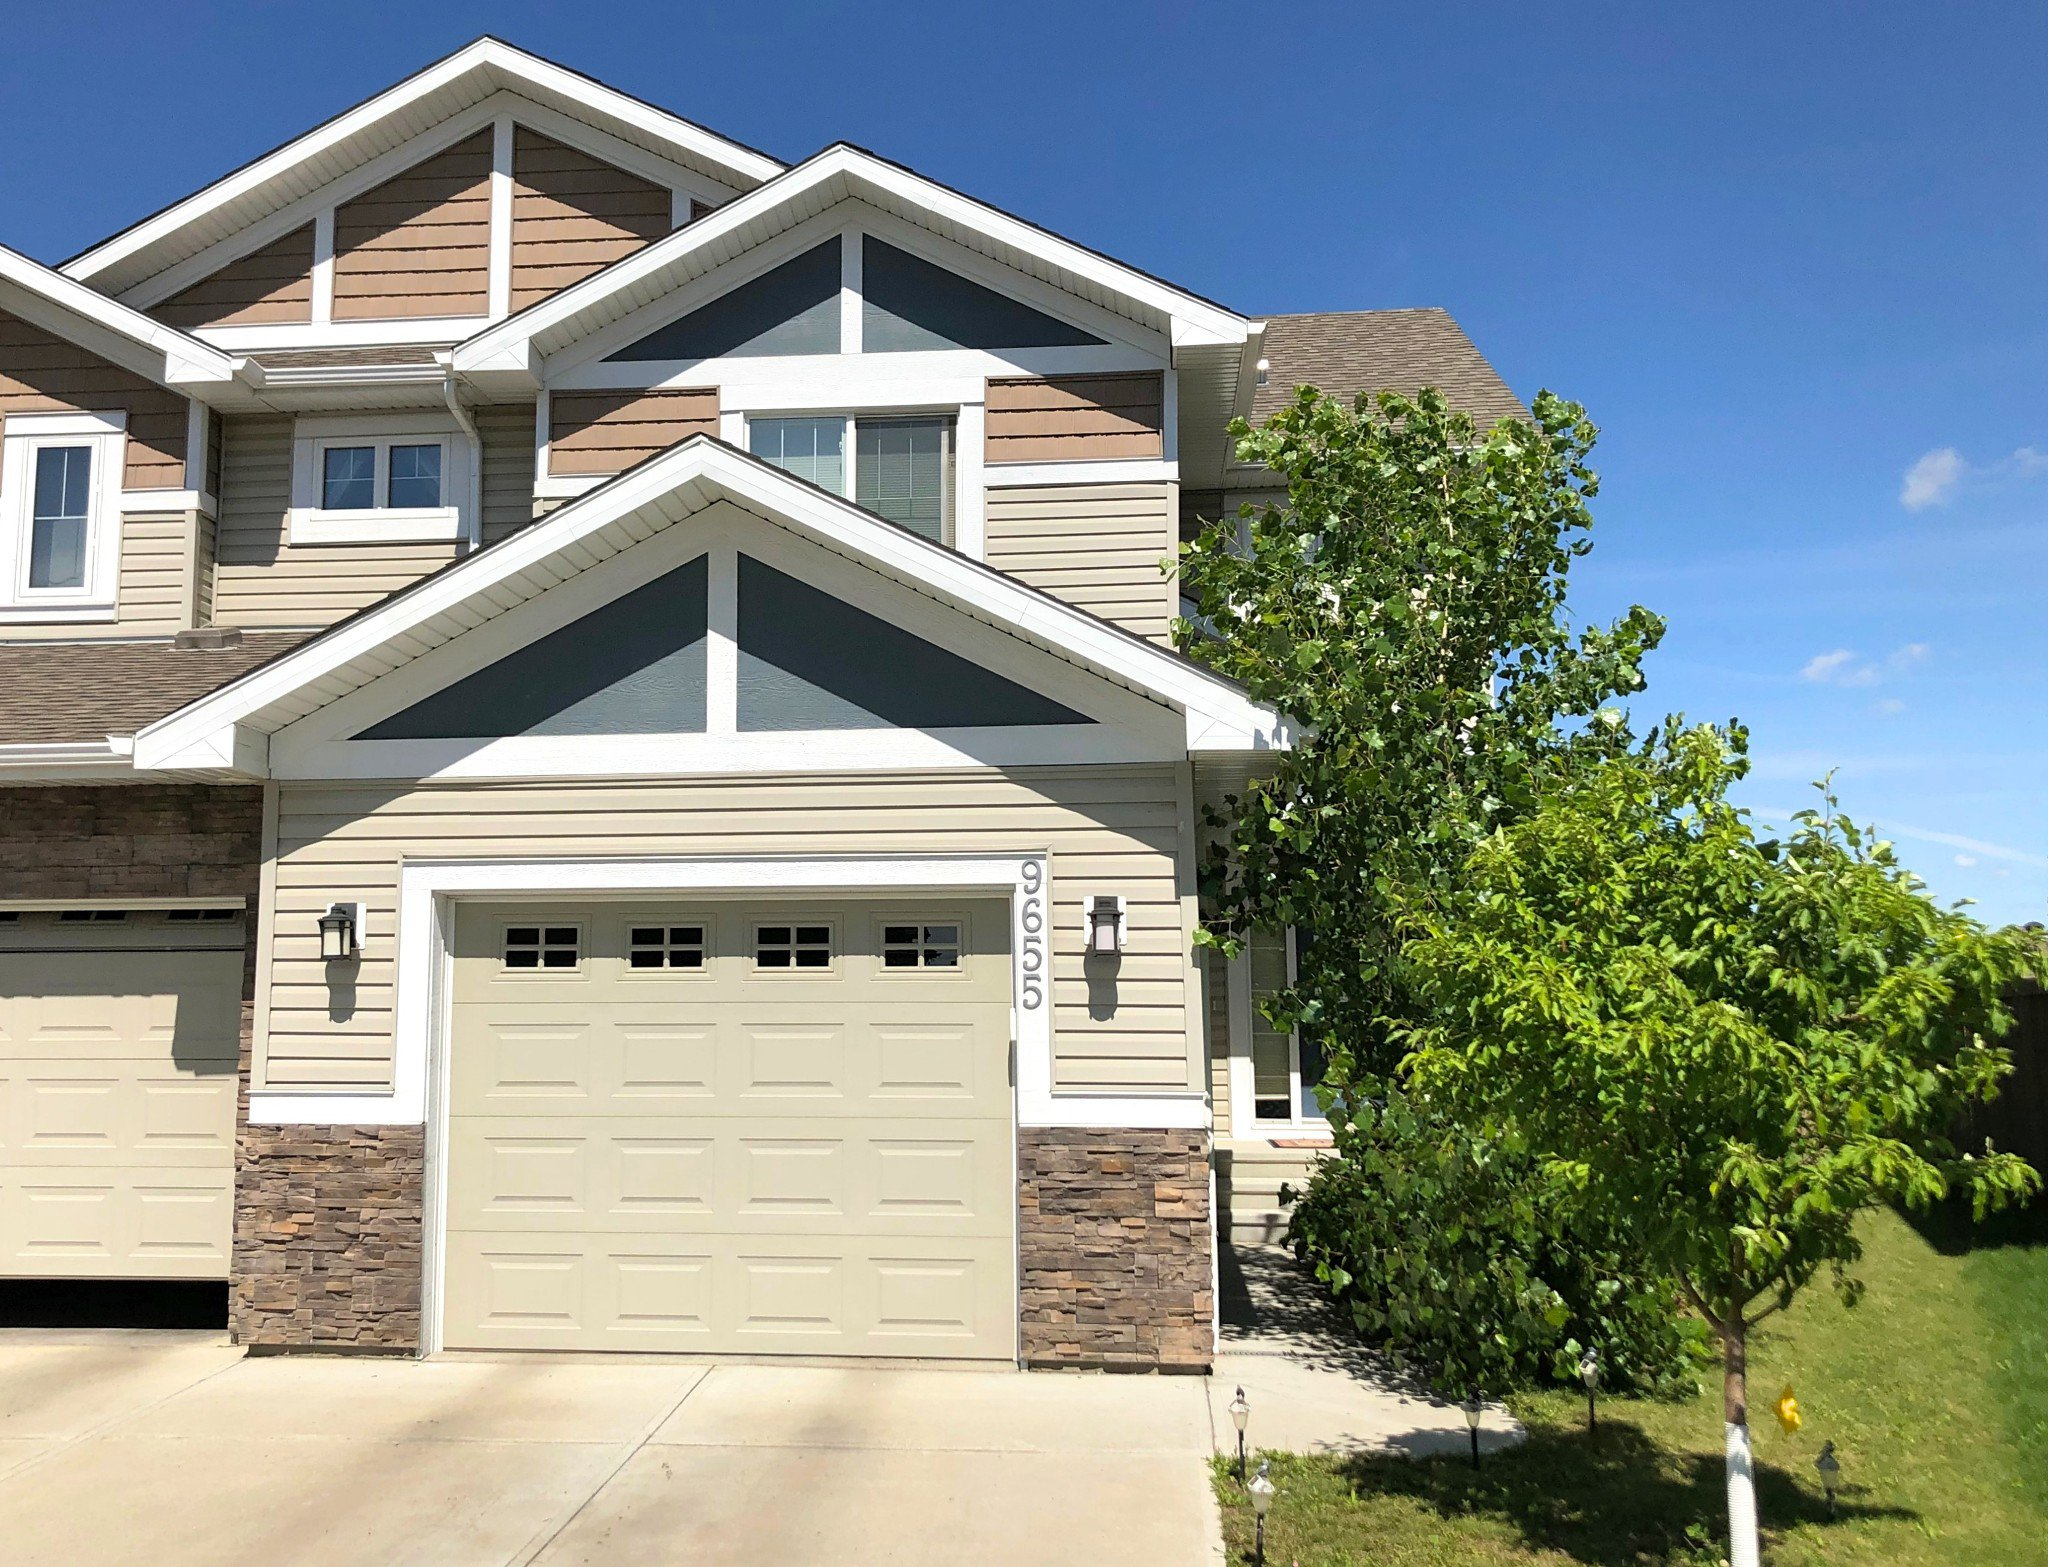 Main Photo: 9655 Simpson pl NW in Edmonton: House for sale